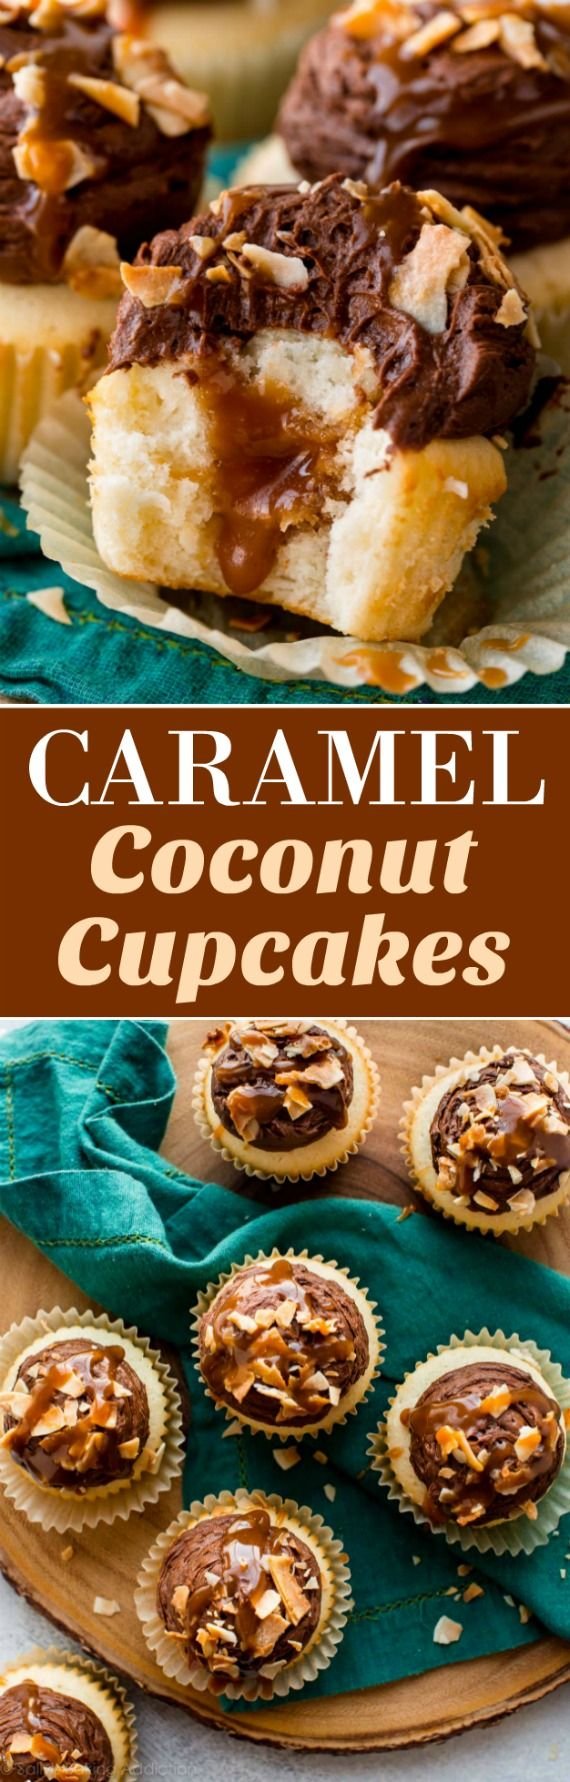 Chocolate caramel coconut cupcakes with salted caramel filling, milk chocolate frosting, and fluffy coconut cupcakes! Recipe on sallysbakingaddiction.com